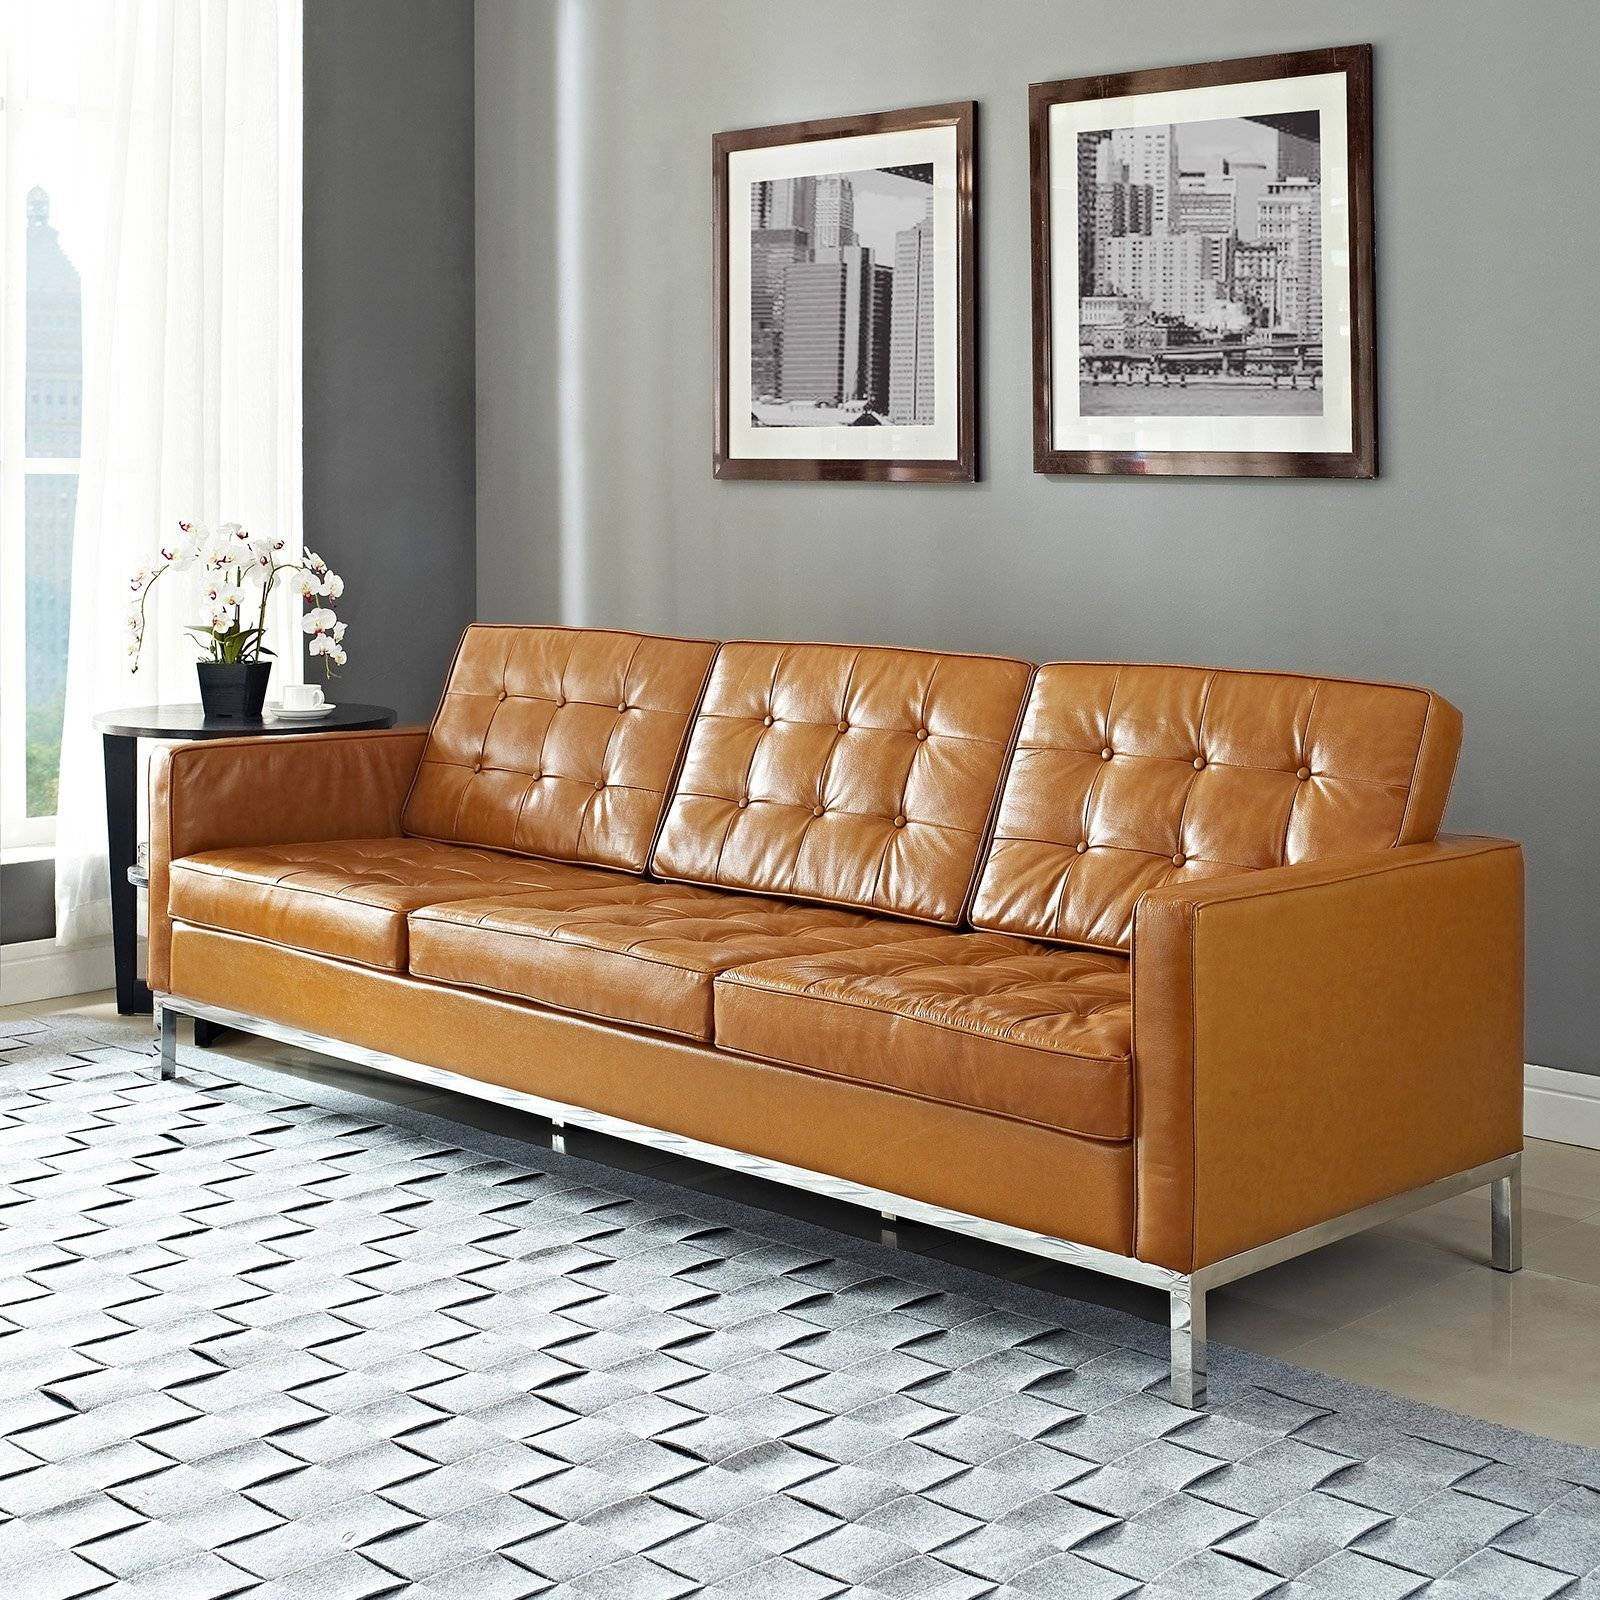 Modway Loft Leather Sofa | Hayneedle for Caramel Leather Sofas (Image 11 of 15)